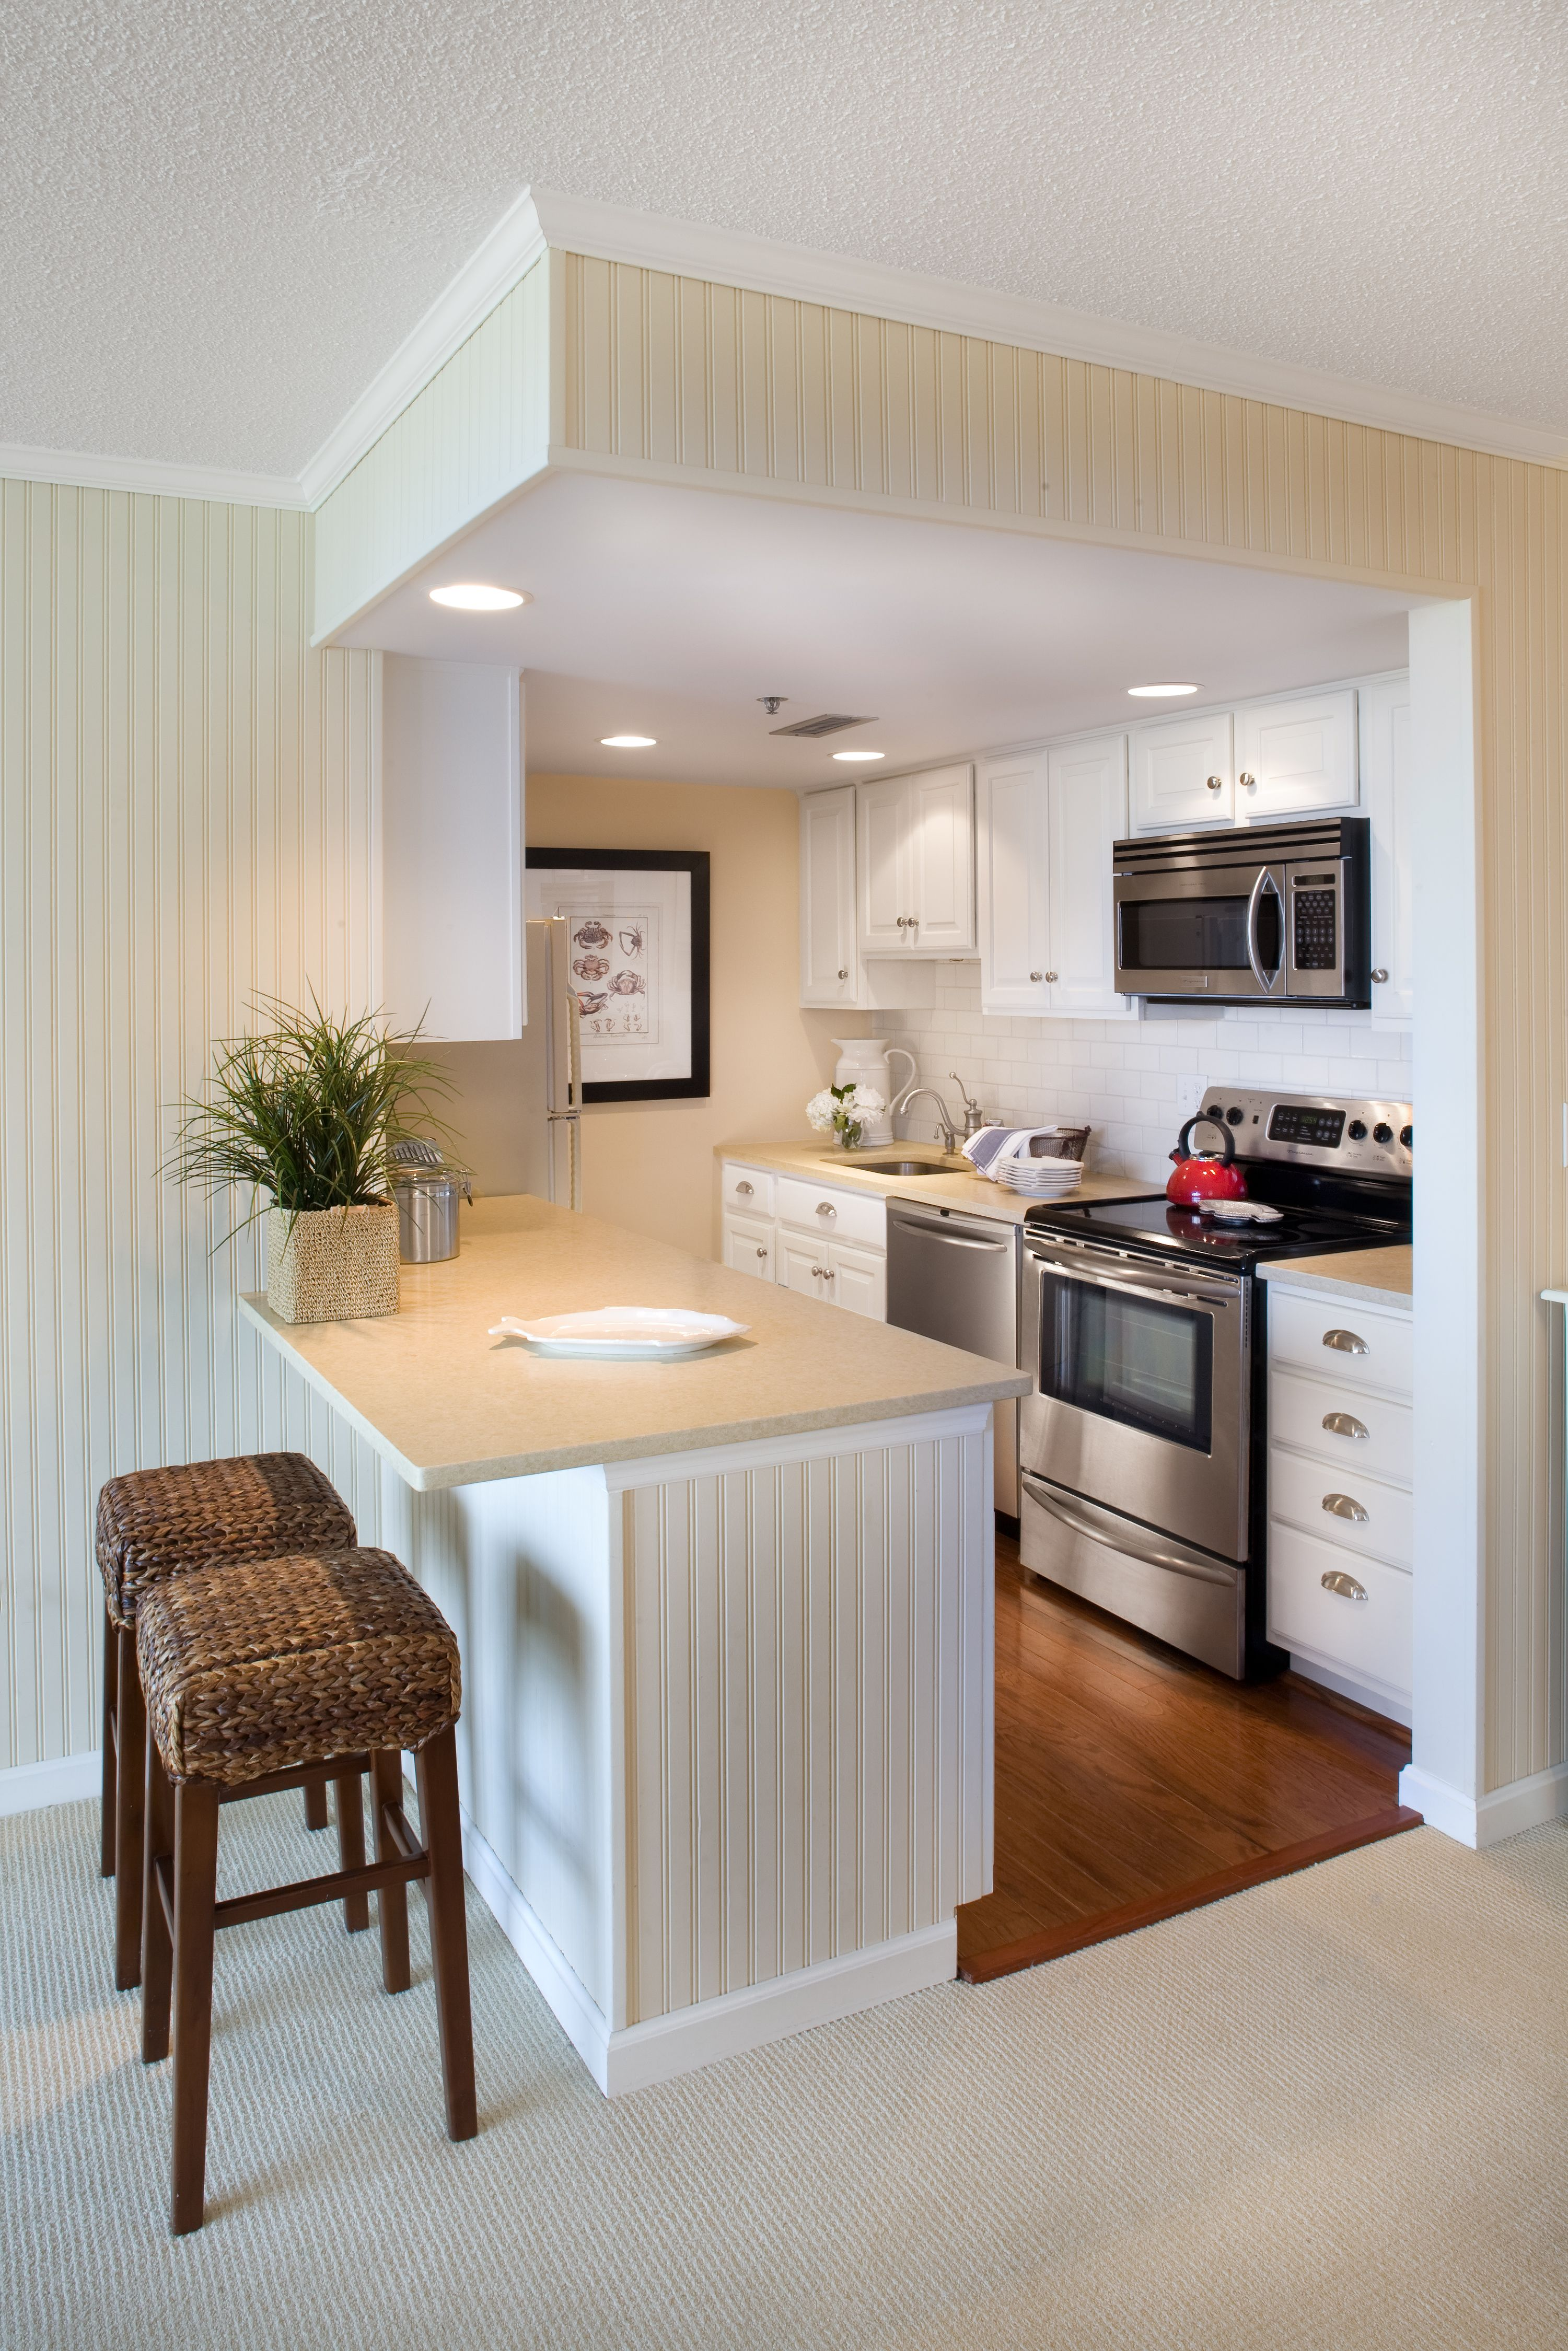 Small But Perfect For This Beach Front Condo Kitchen Designed By